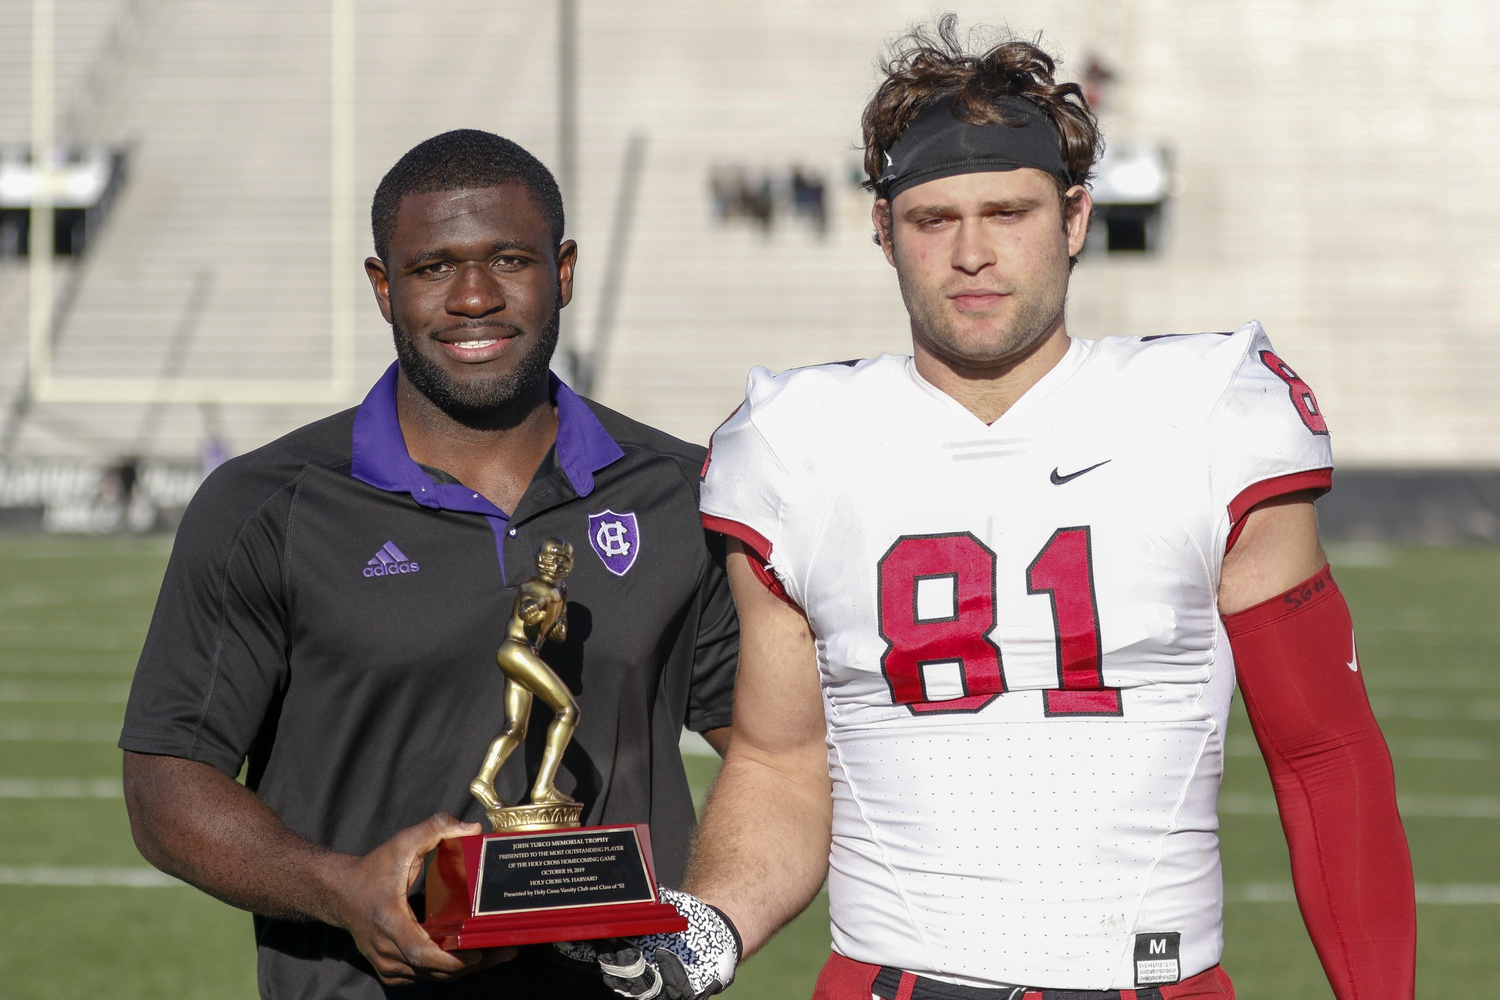 Harvard senior defensive end won the Johnny Turco Memorial Trophy for his performance Saturday. The senior made four tackles in addition to three sacks.